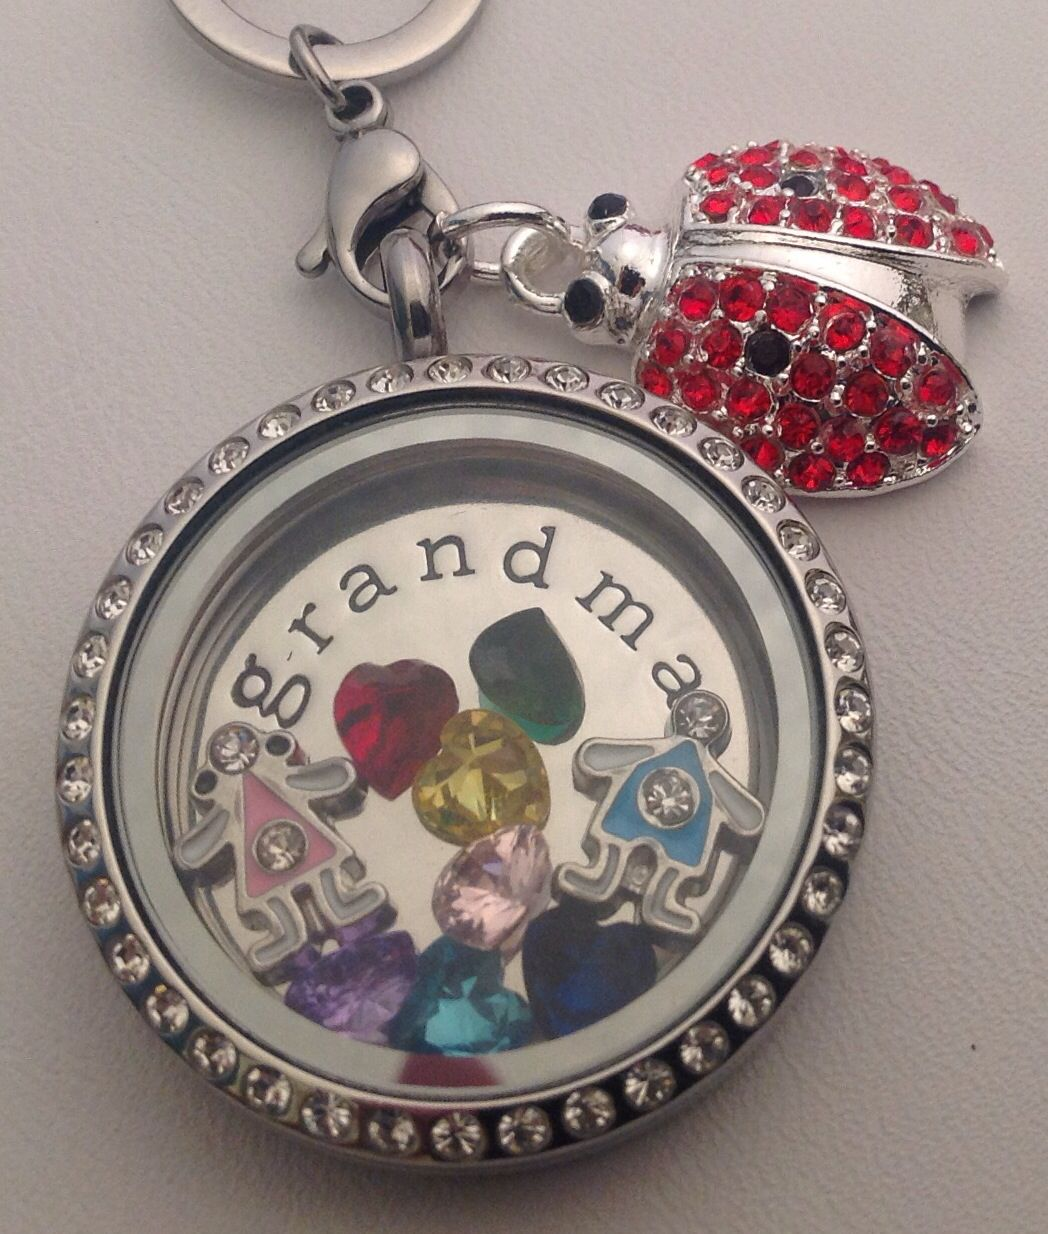 birthday names grandmother gifts products best and necklace pinterest camdenmcl on favors lockets with beauty mothers grandma day images